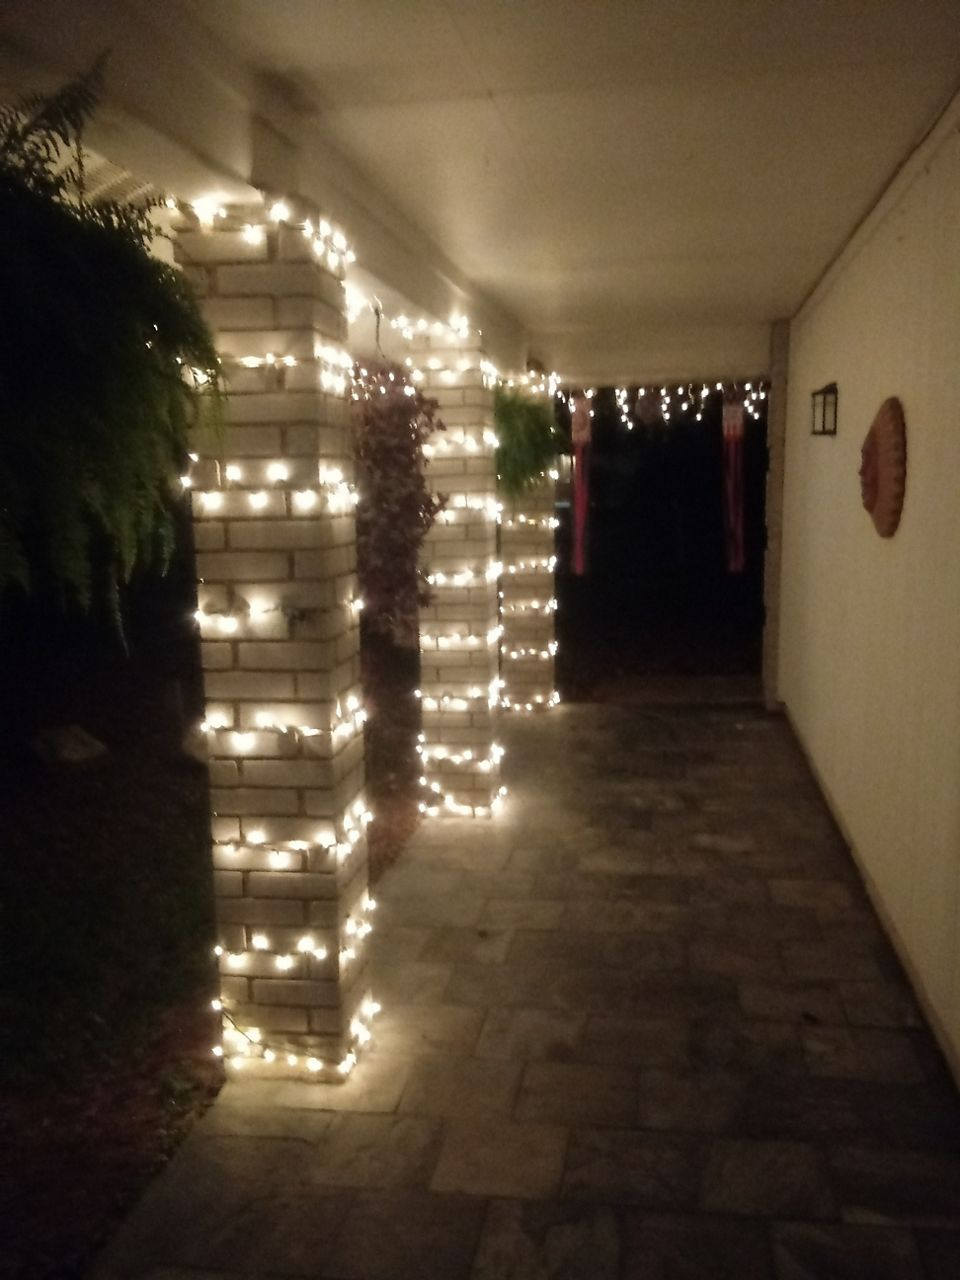 A local viewer sent us this photo of their exterior lights.